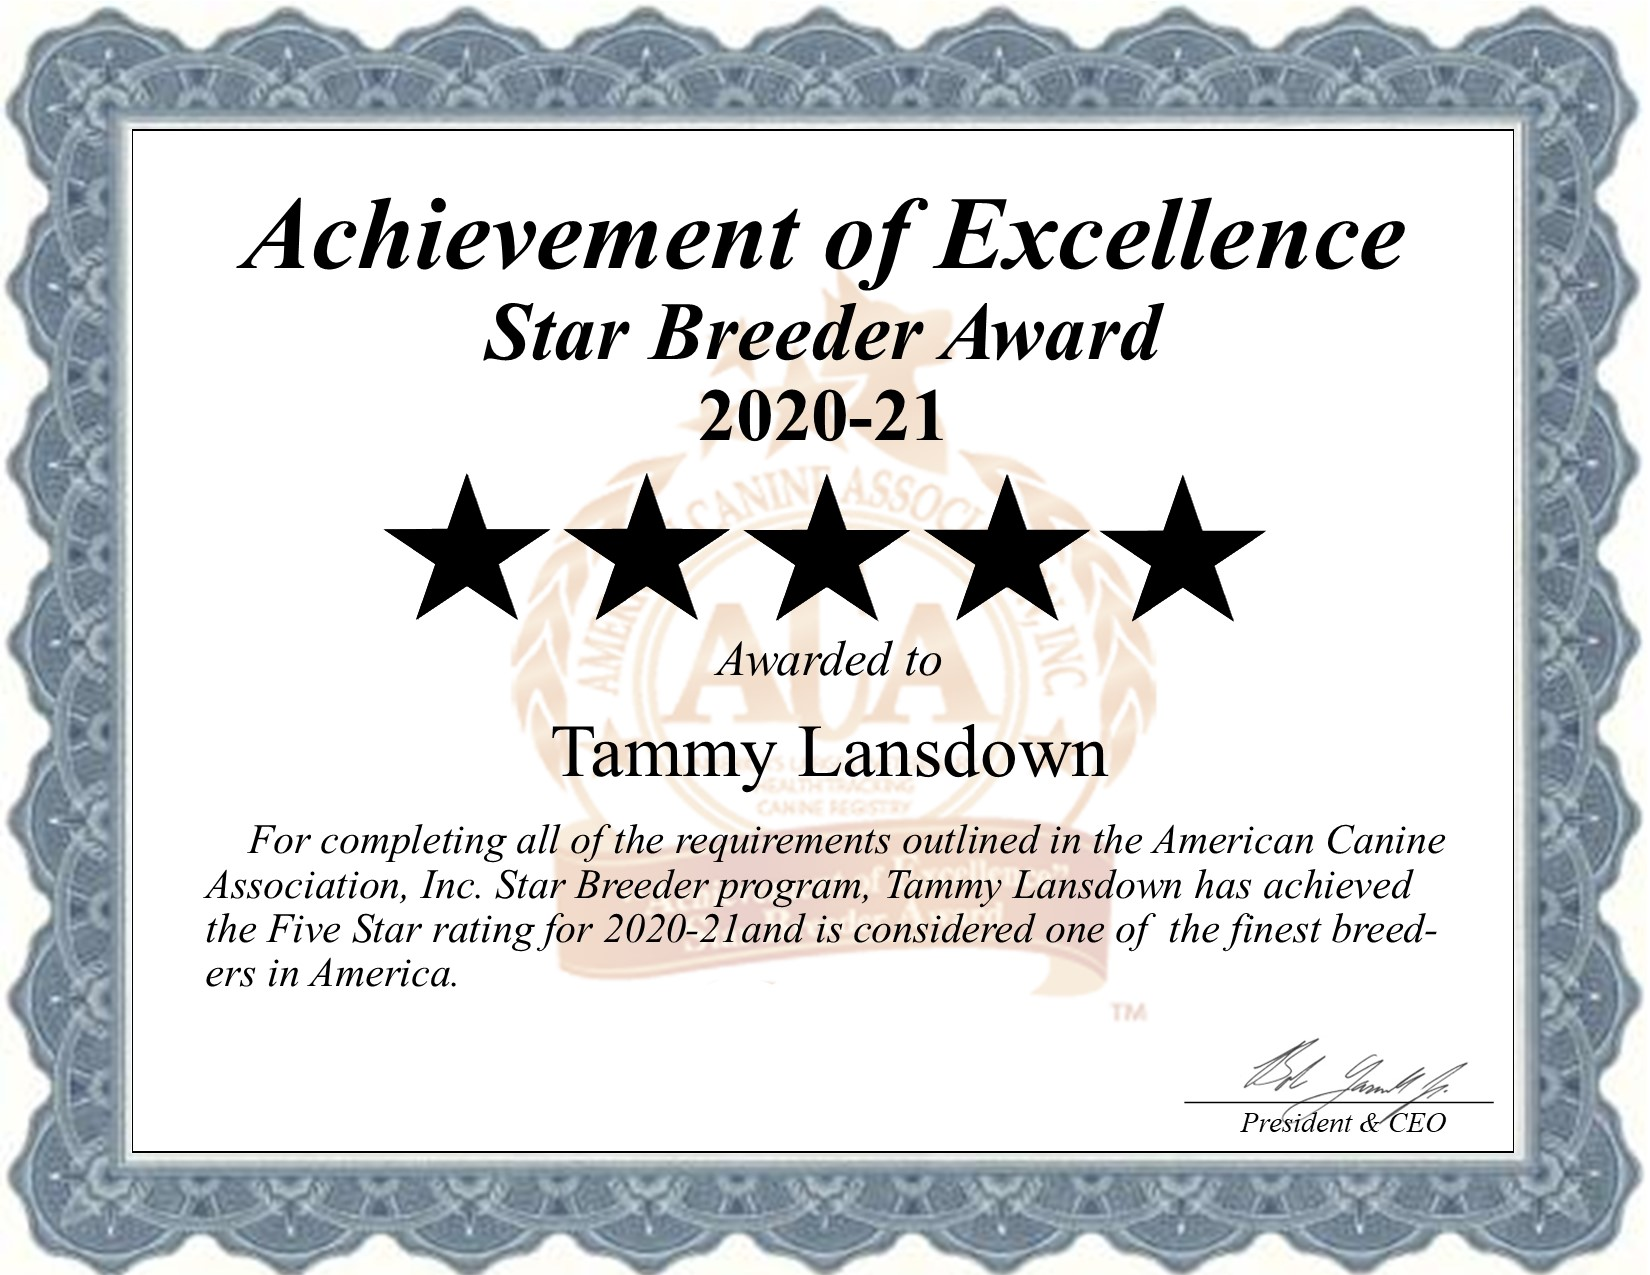 Tammy, Lansdown, dog, breeder, star, certificate, Tammy-Lansdown, Seymour, MO, Missouri, puppy, dog, kennels, mill, puppymill, usda, 5-star, aca, ica, registered, Maltese, 43-A-1268